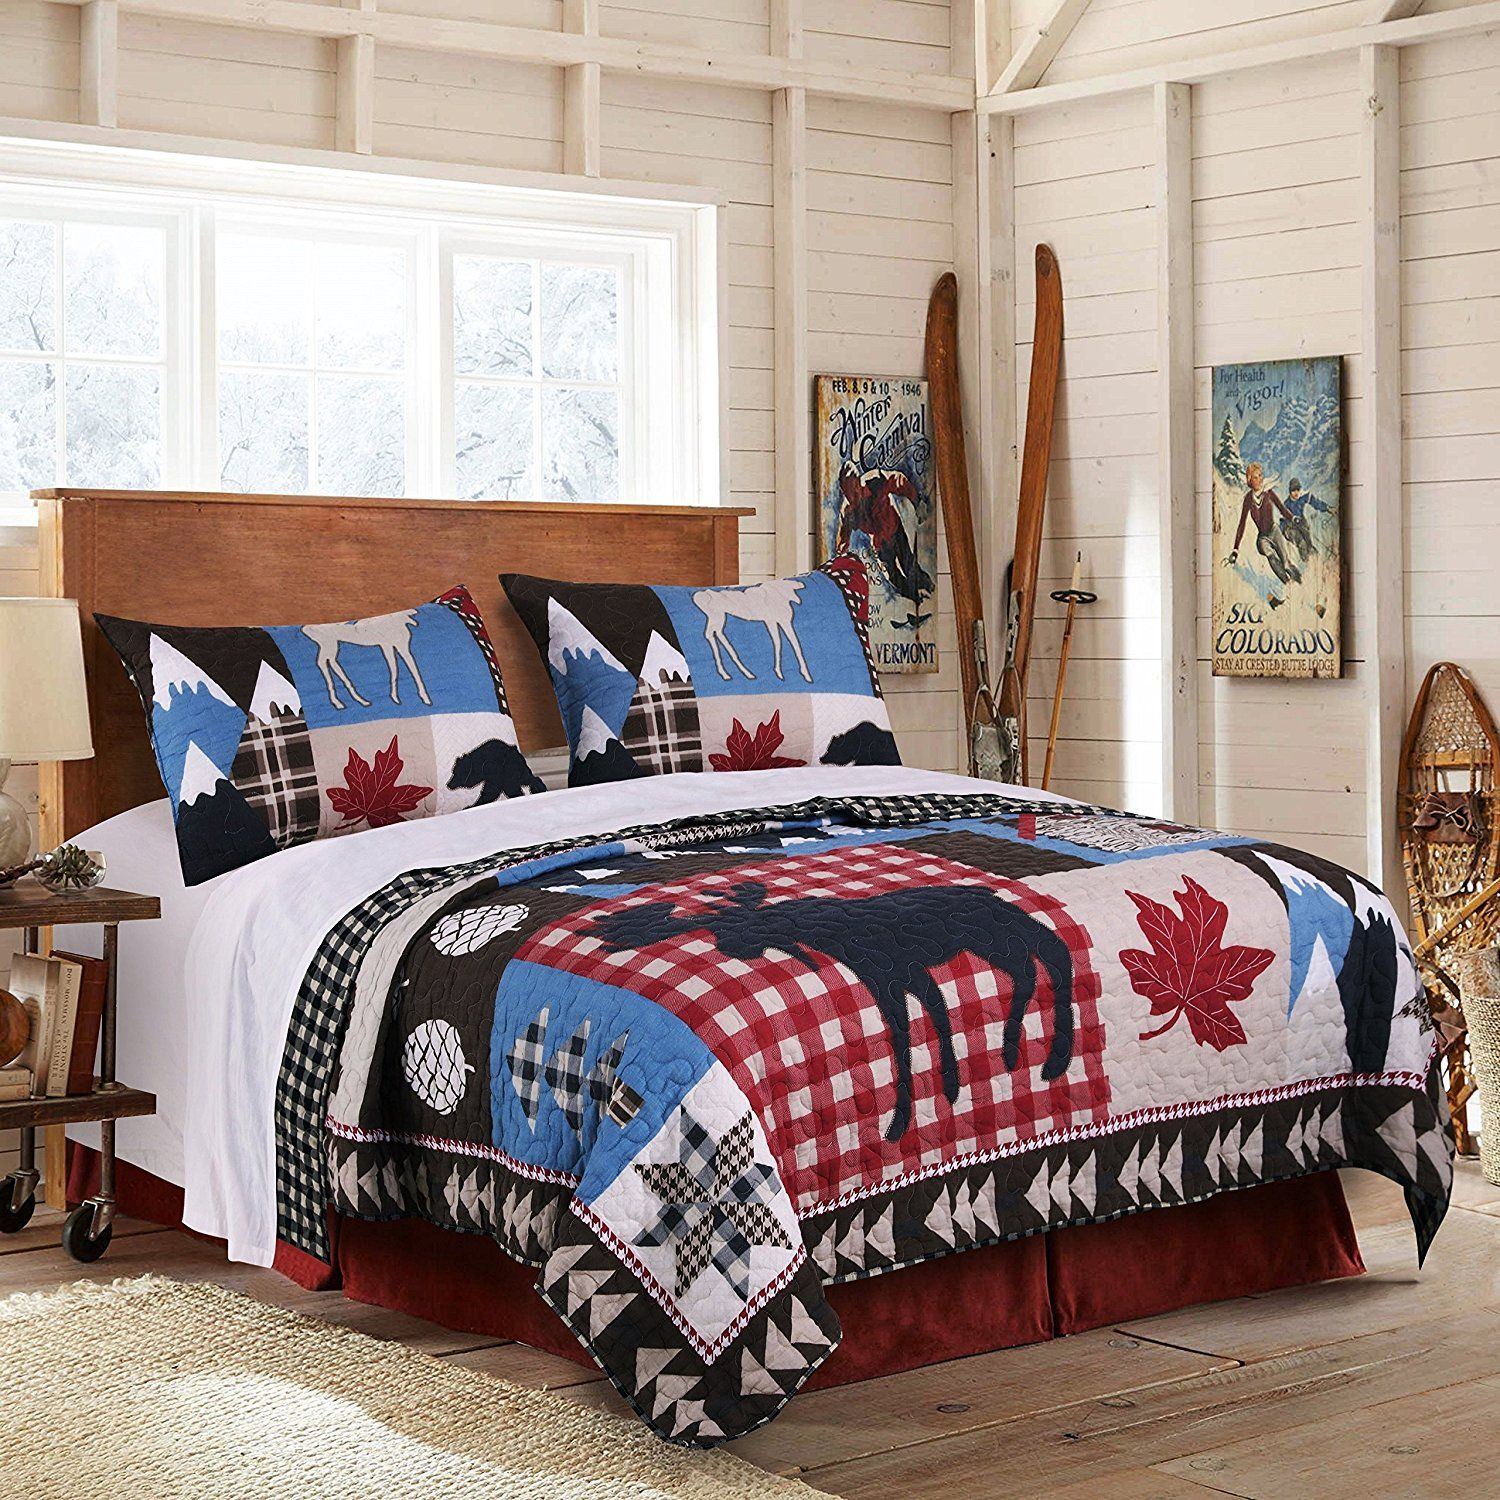 3 Piece Blue White Red Black Hunting Themed Quilt Full Queen Set